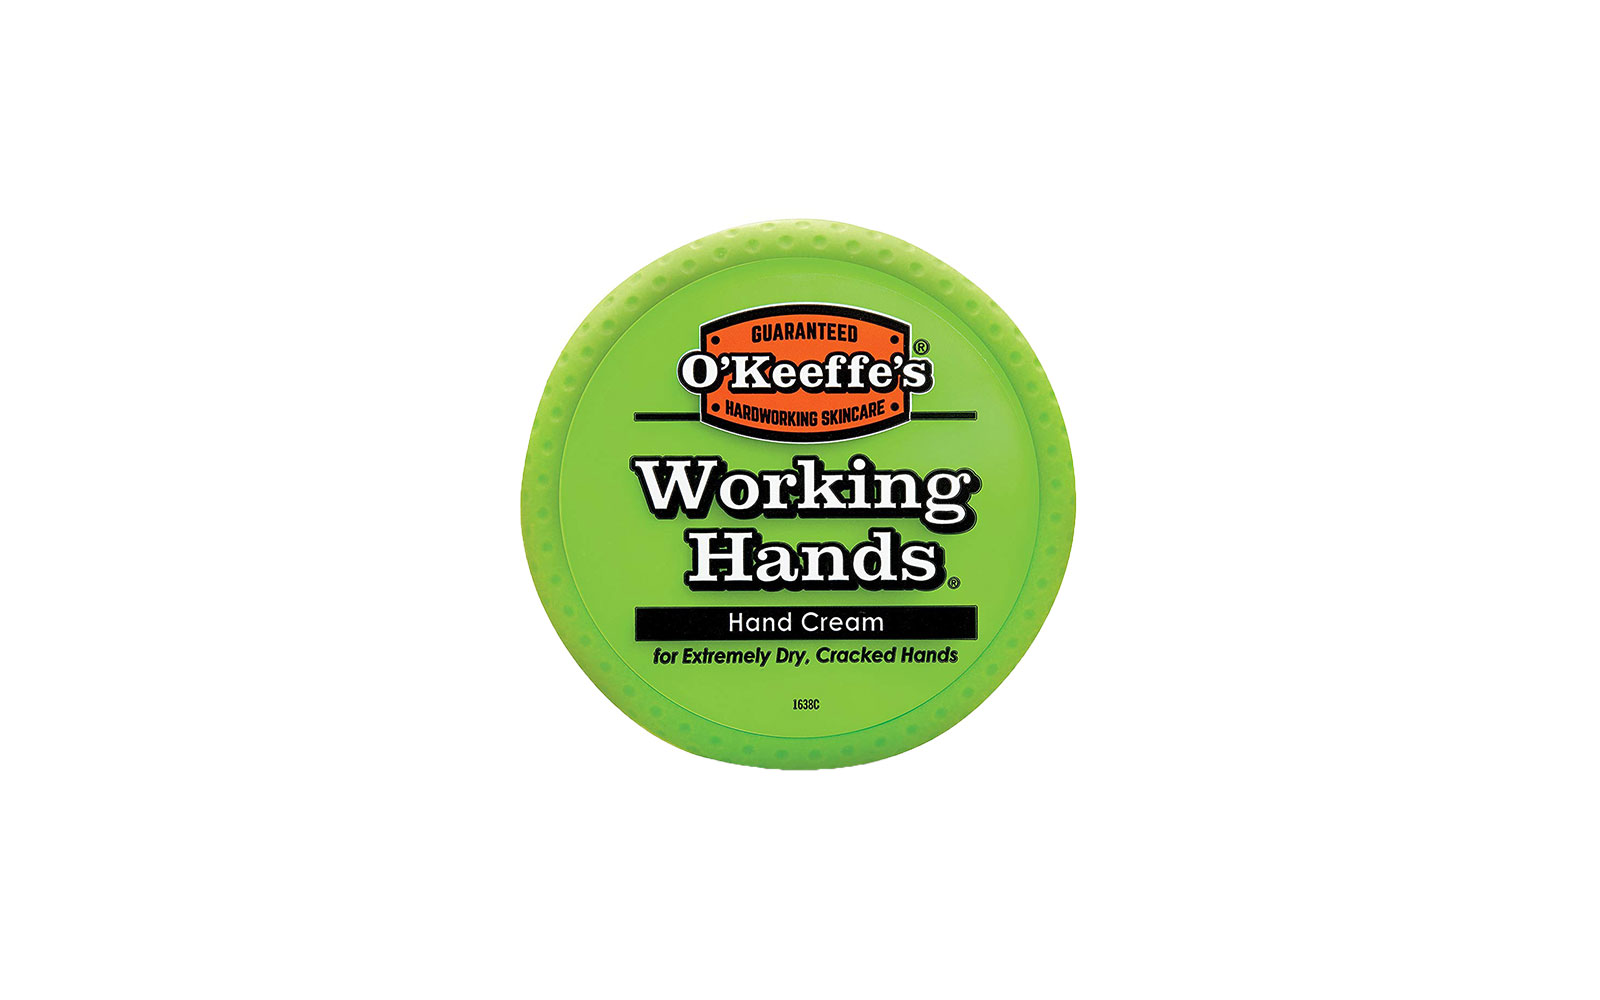 Best Hand Cream Under $10: O'Keeffe's Working Hands Hand Cream